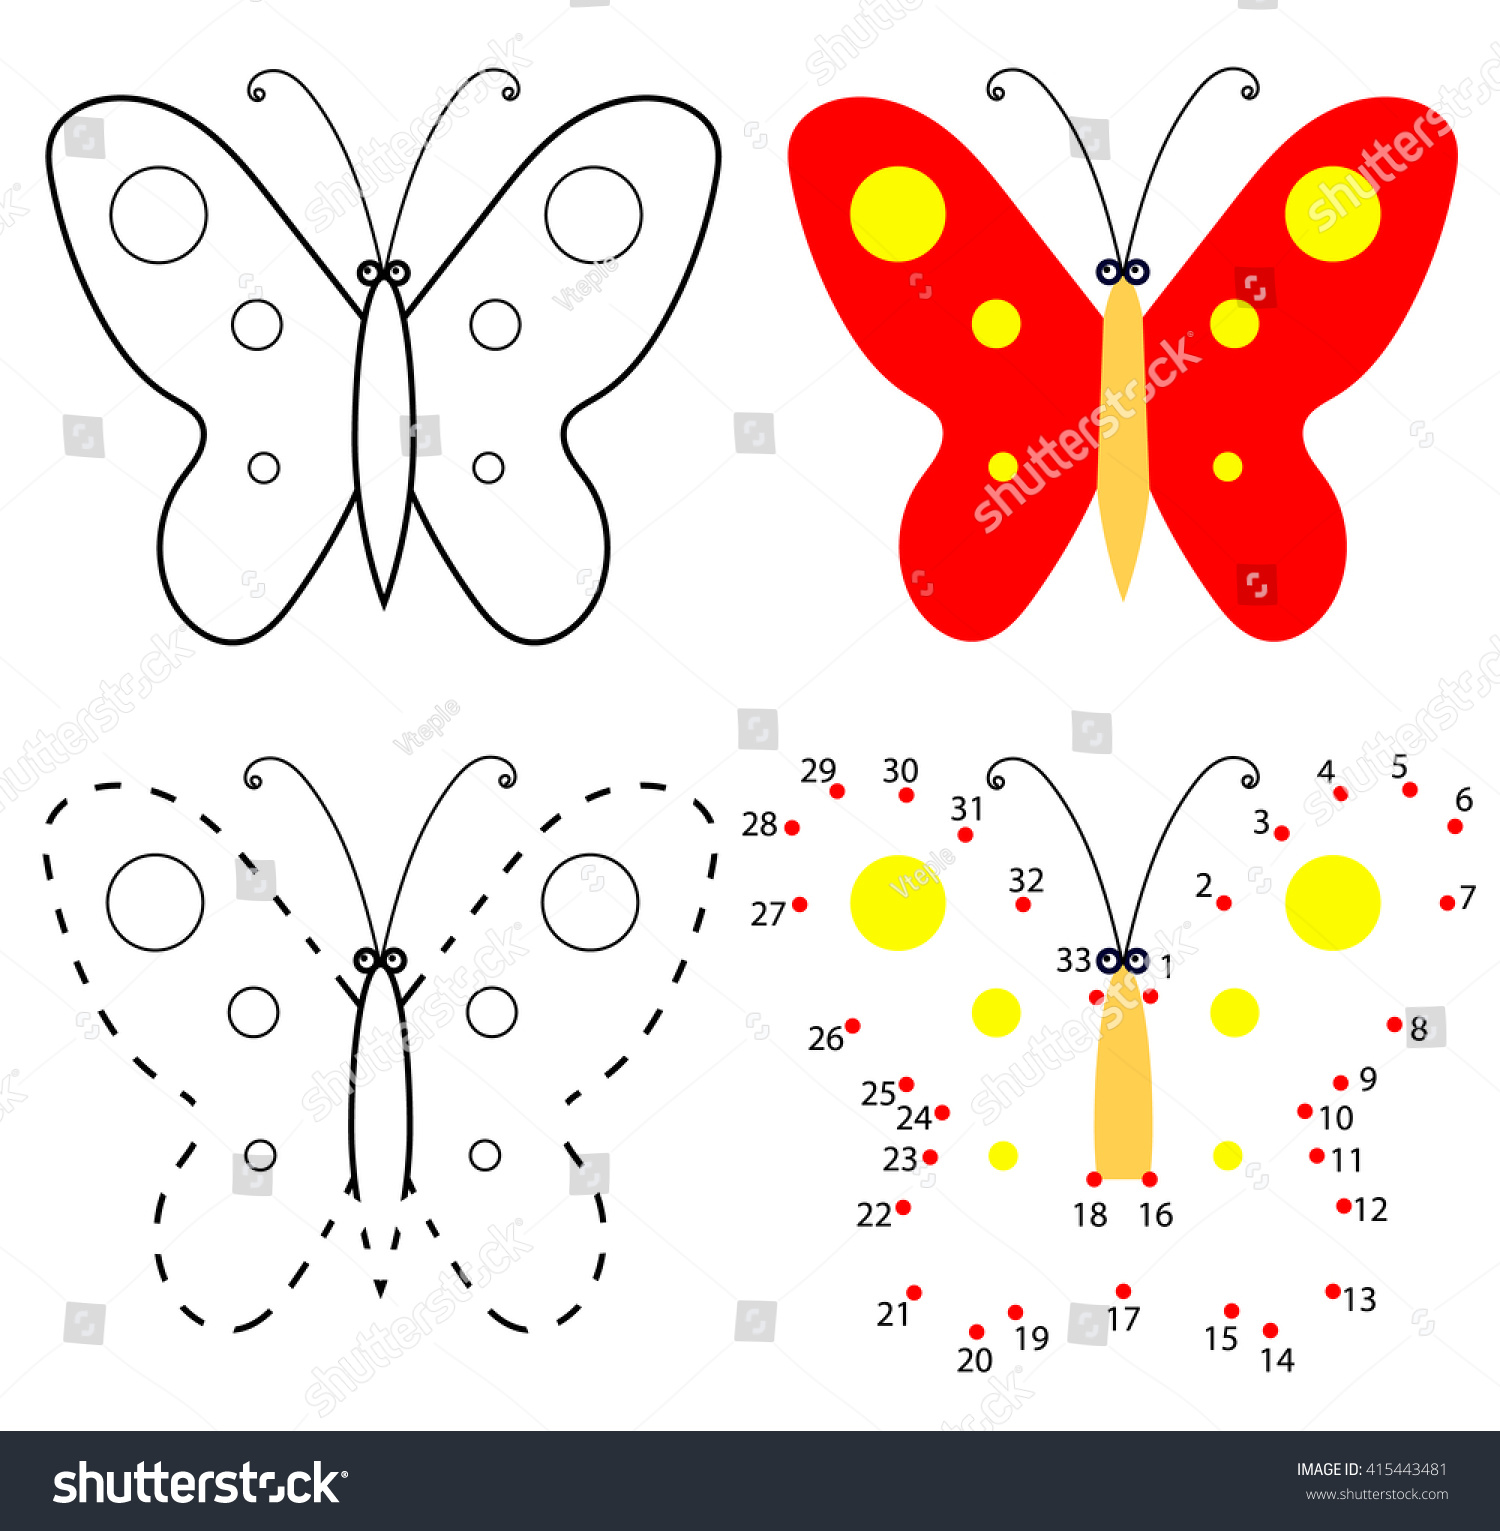 Butterfly Dot To Dot To 100